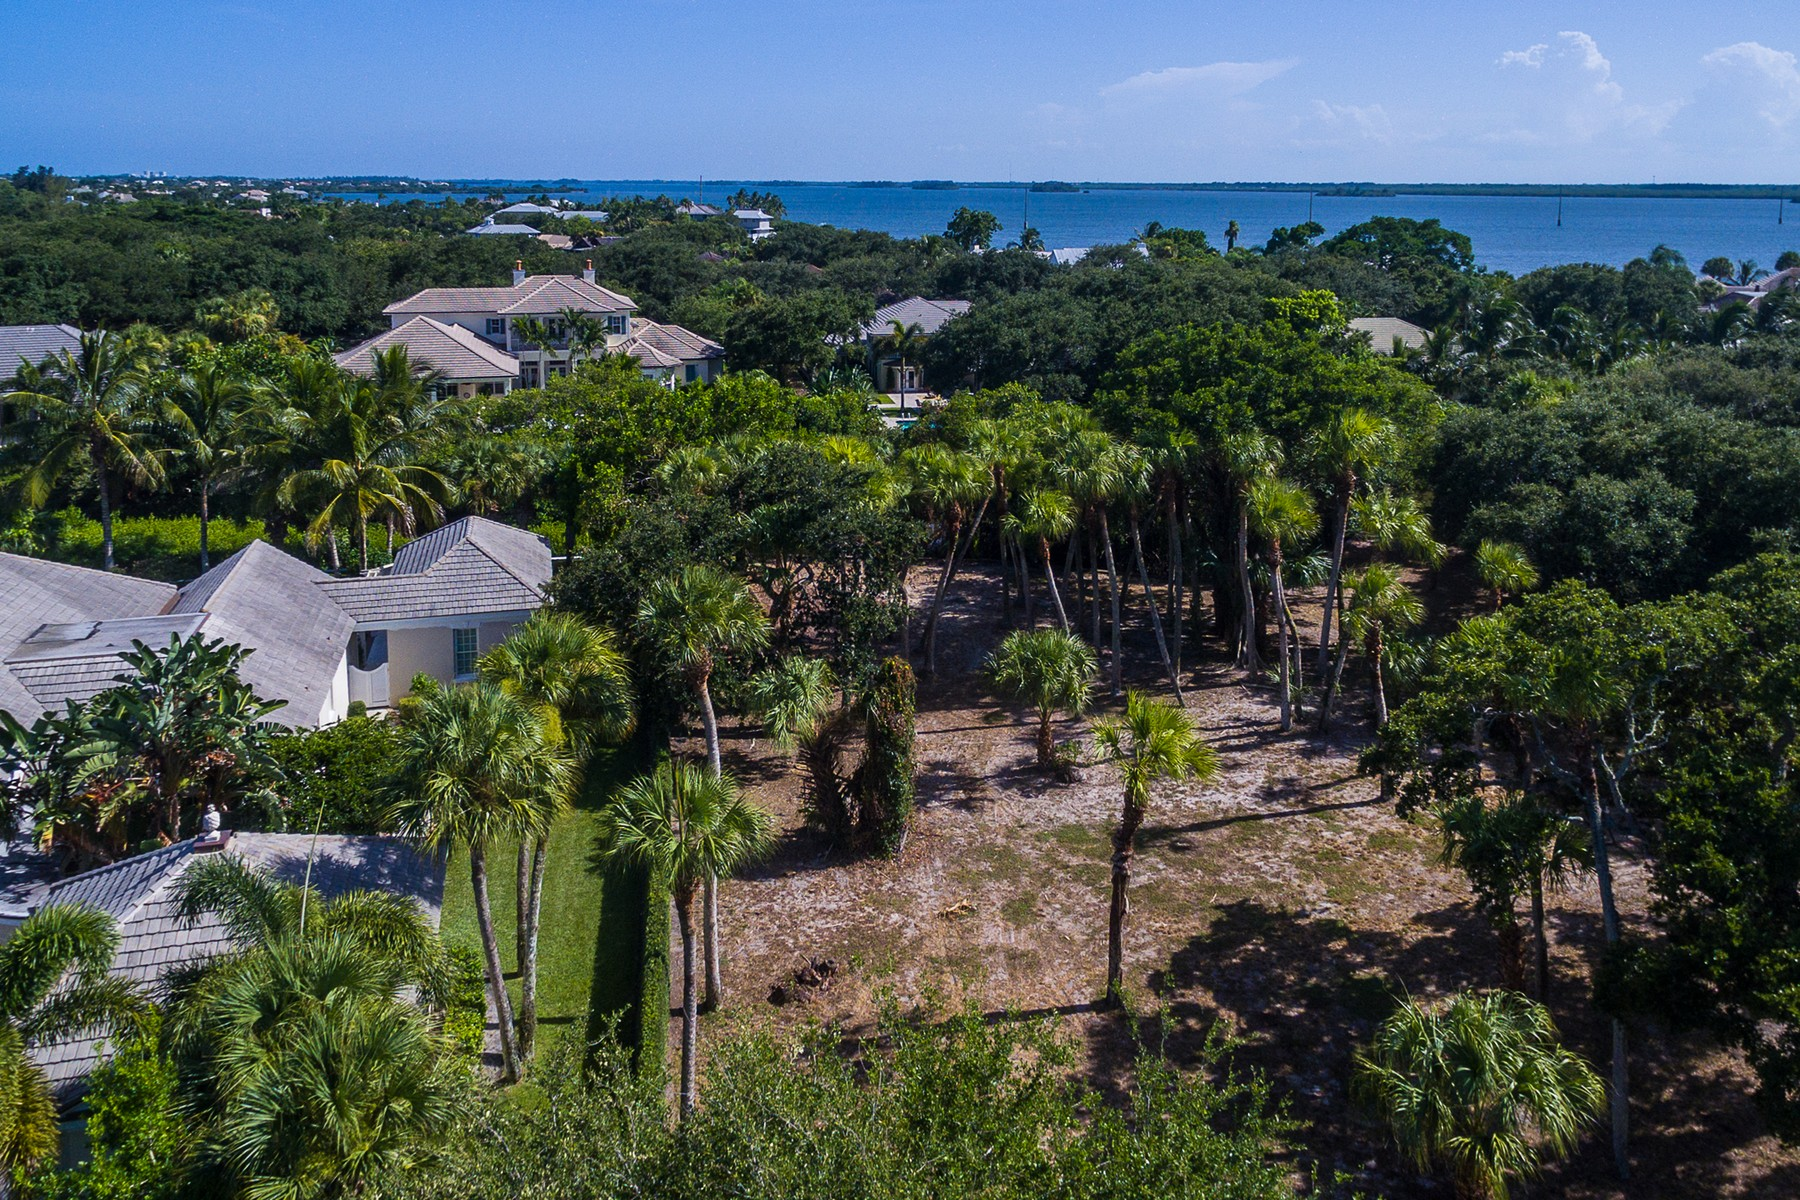 Superb Waterfront Homesite 1335 Little Harbour Ln Vero Beach, Florida 32963 Estados Unidos